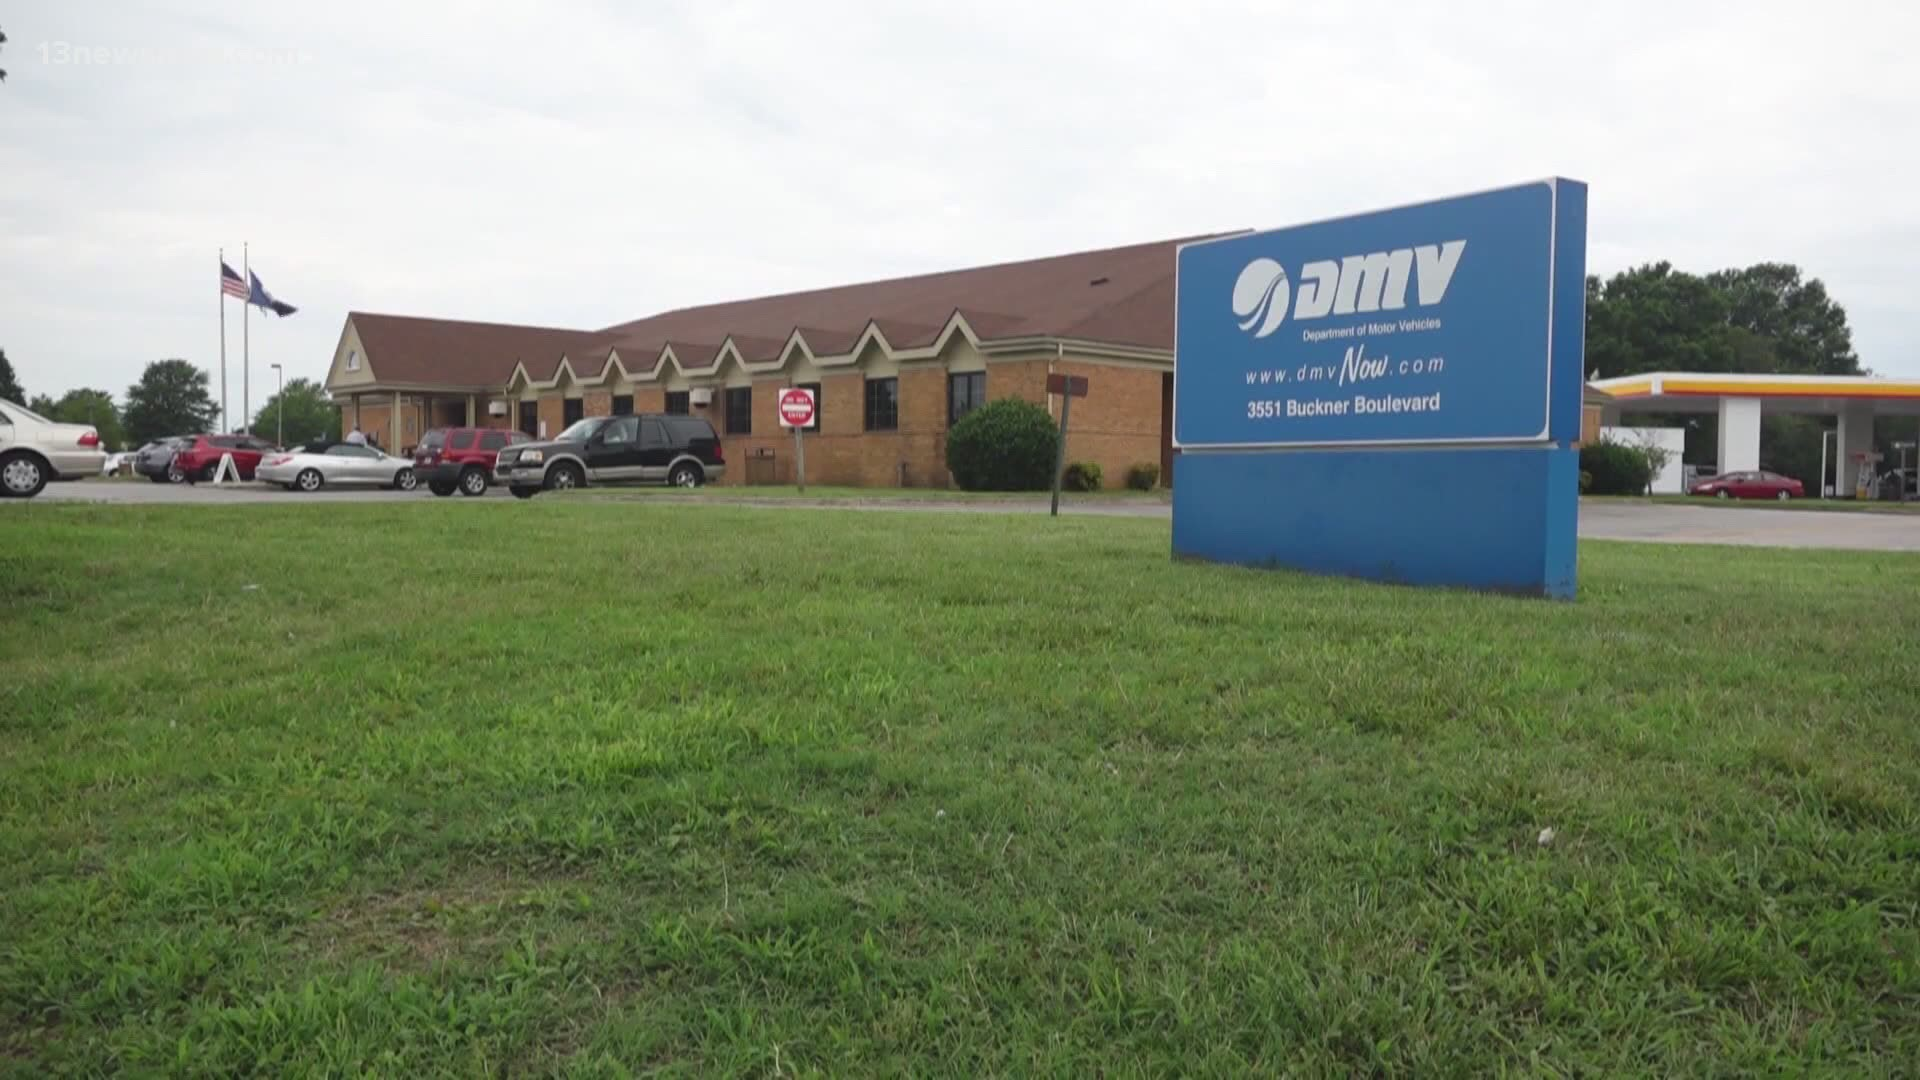 Frustration Continues At Dmv Because Of Delays Appointments Needed Months Out Wusa9 Com